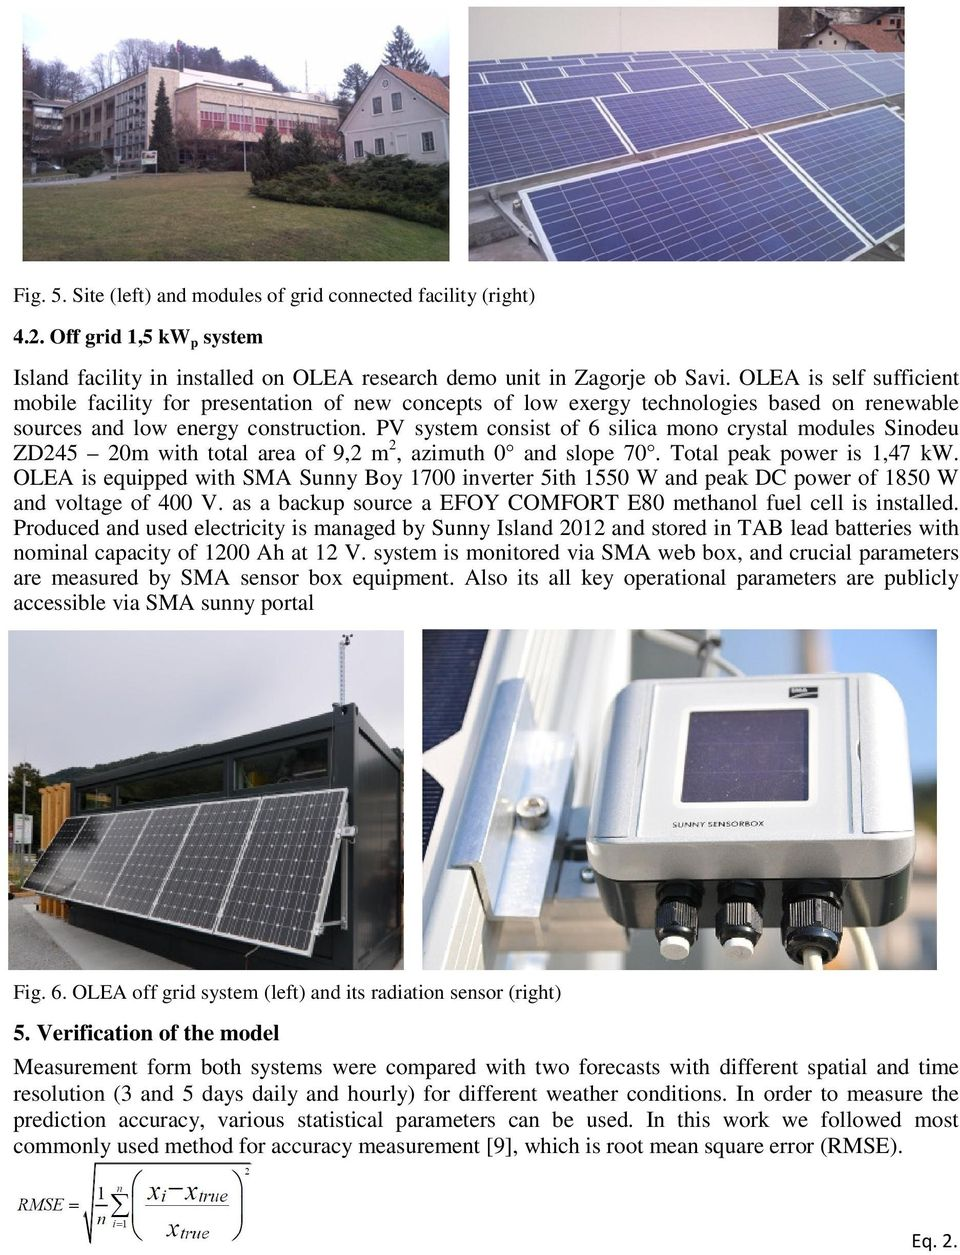 PV system consist of 6 silica mono crystal modules Sinodeu ZD245 20m with total area of 9,2 m 2, azimuth 0 and slope 70. Total peak power is 1,47 kw.